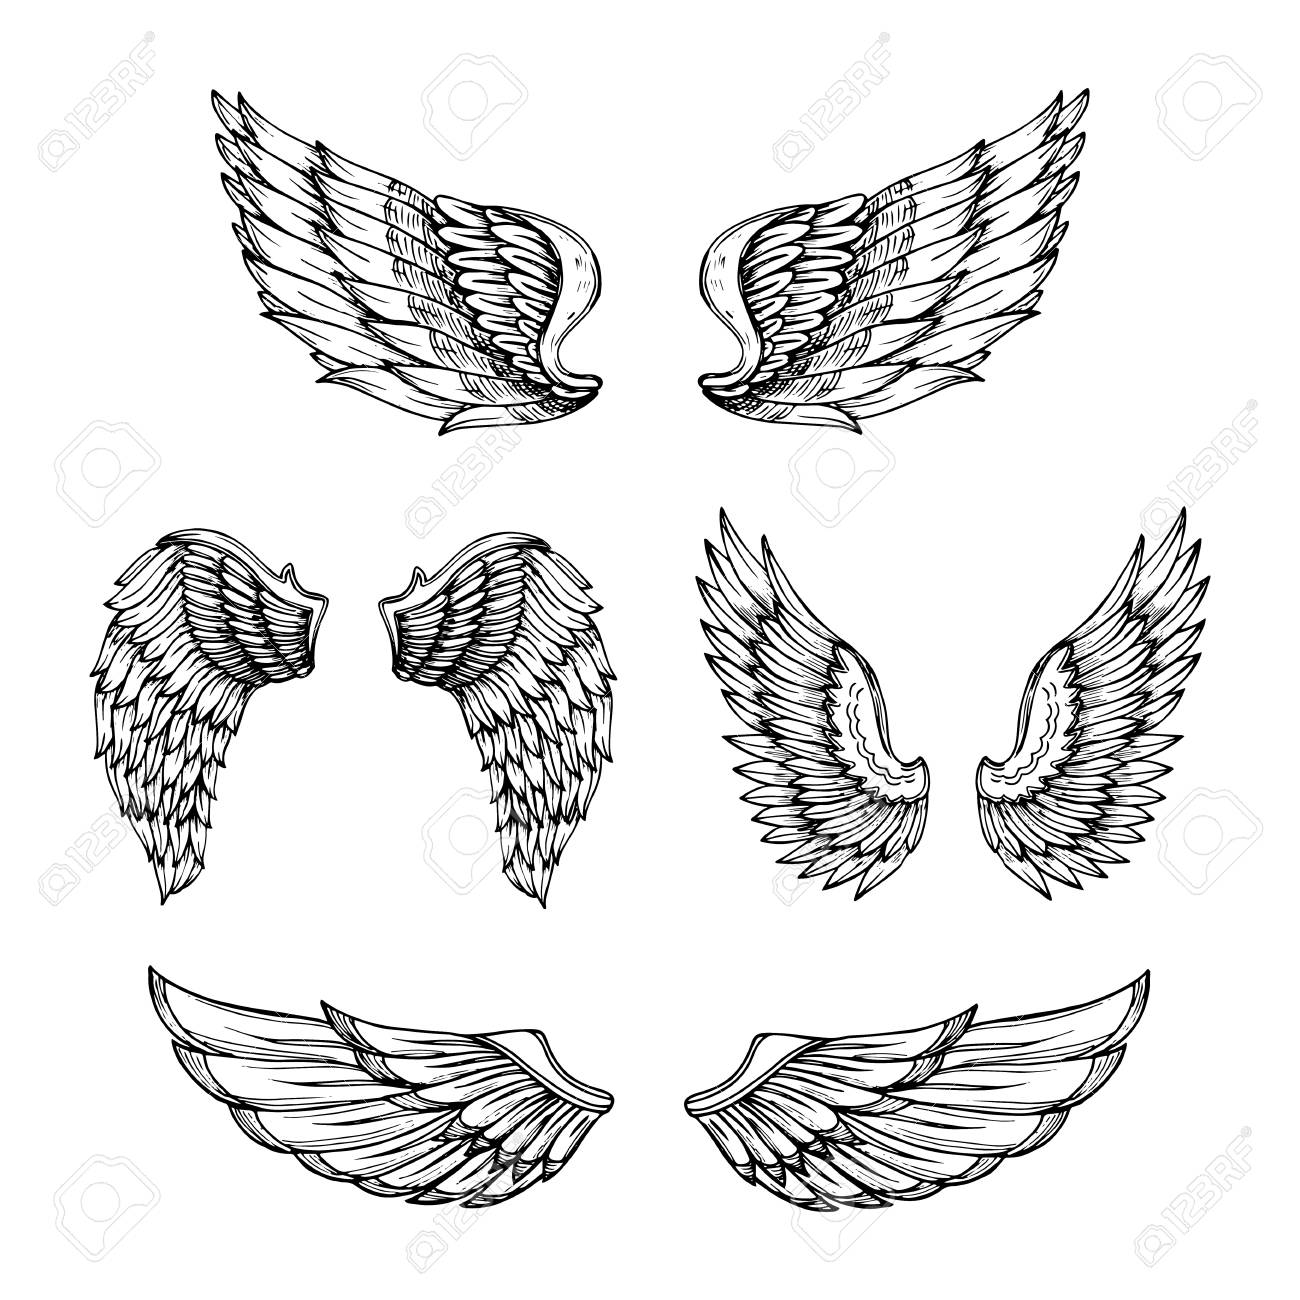 Sketch angel wings with feathers vector tattoo design isolated angel